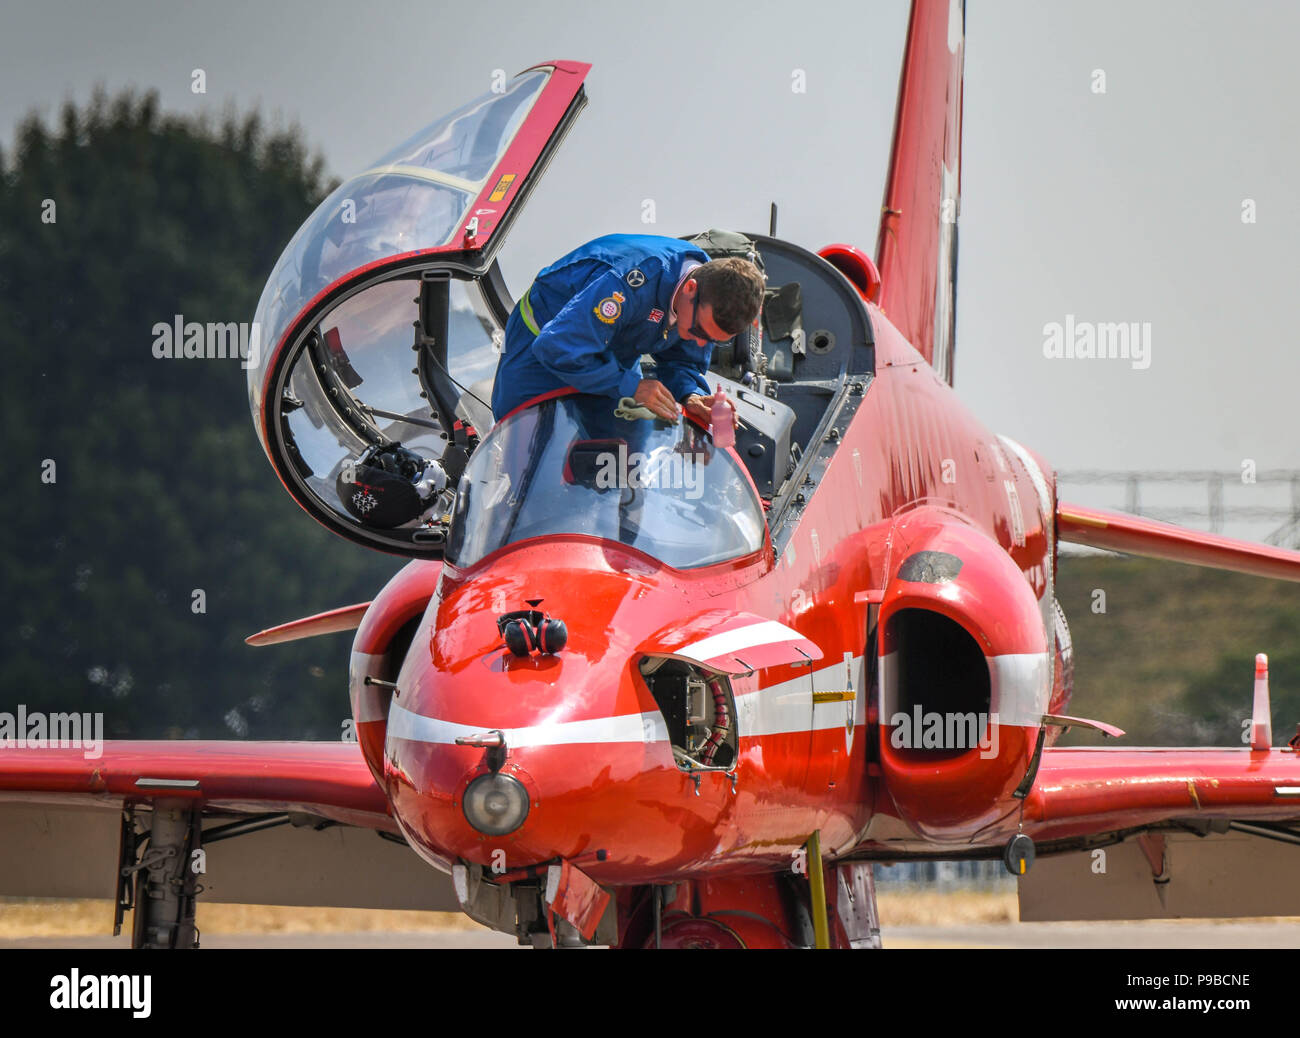 A Hawk jet of the Royal Air Force aerobatic team, the Red Arrows, at the Royal International Air Tattoo 2018. An engineer is cleaning the windscreen - Stock Image